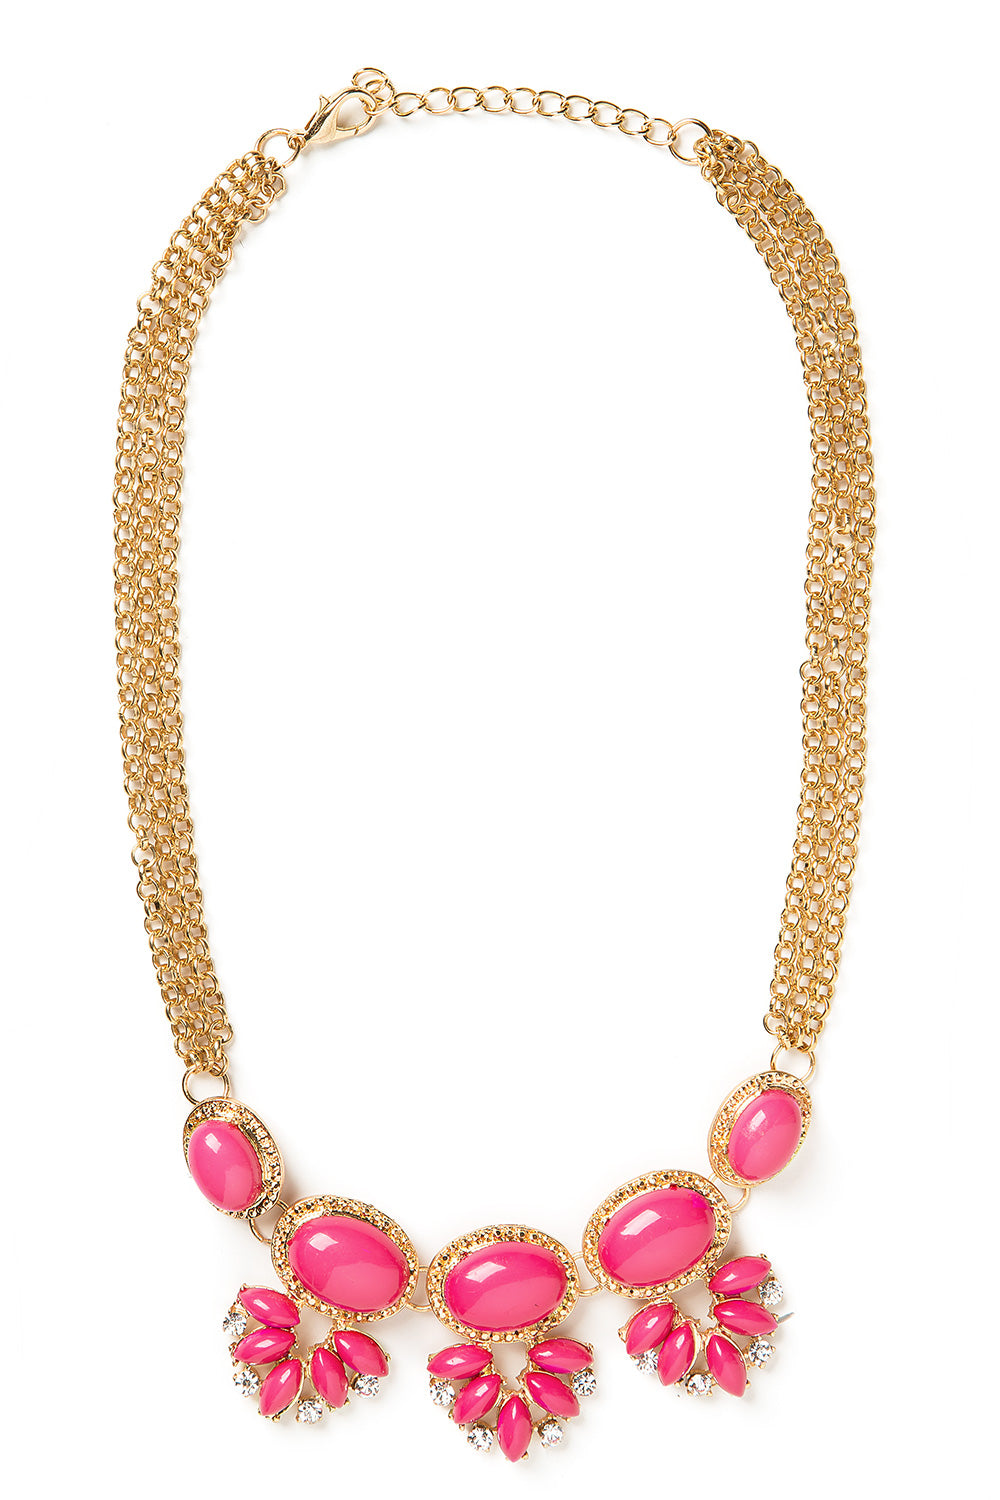 Type 1 Pink Grapes Necklace